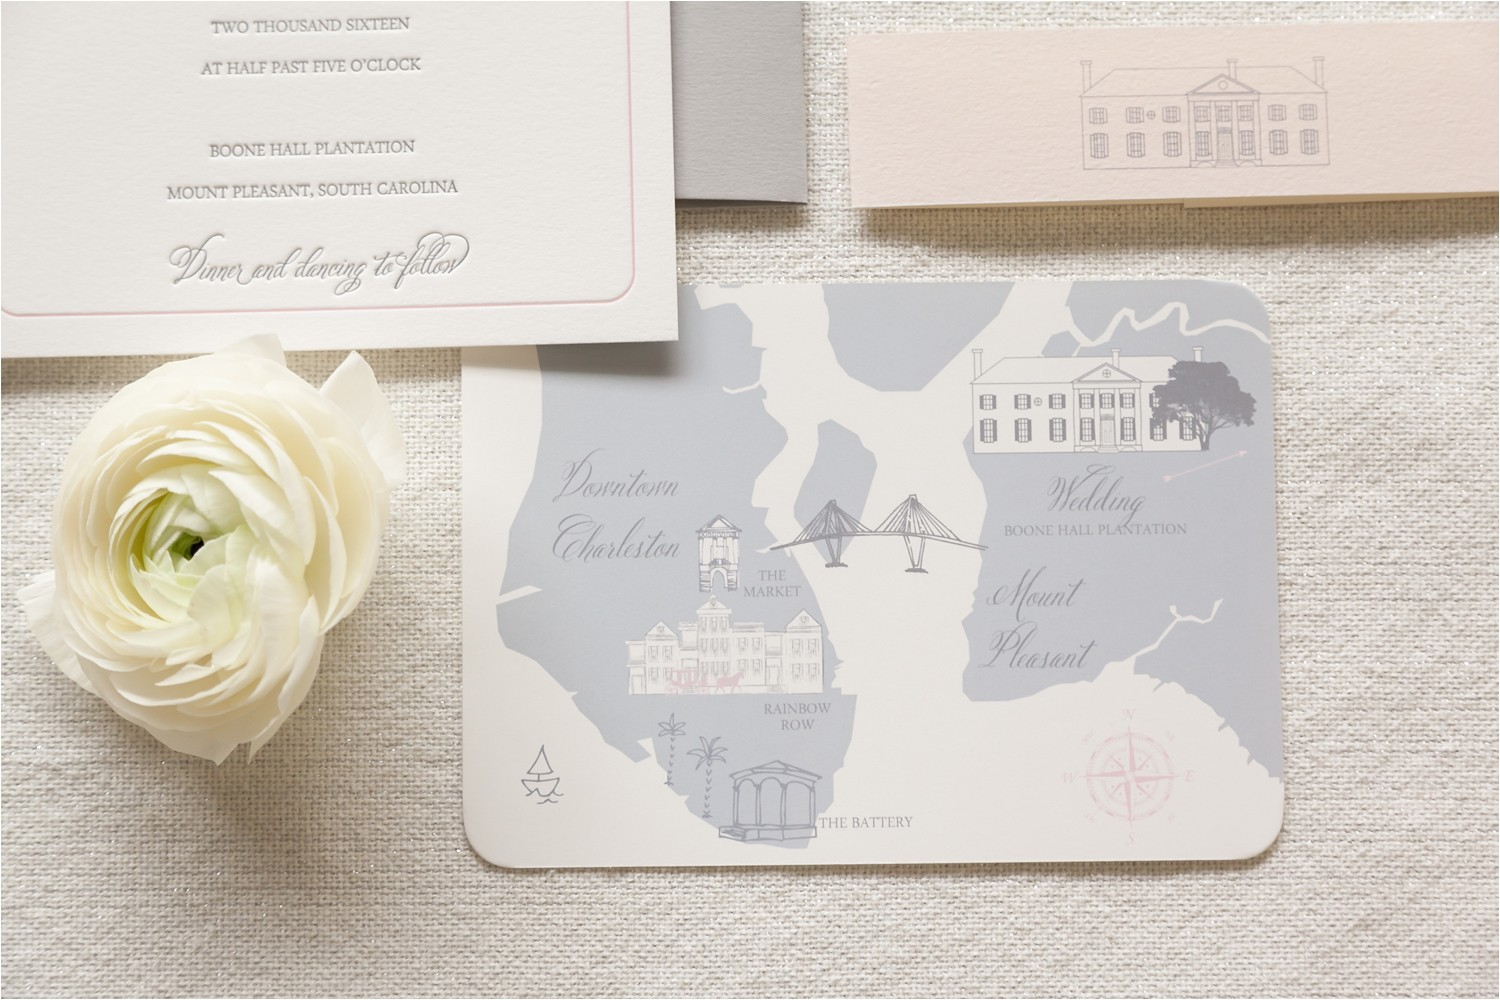 boone hall wedding invitation